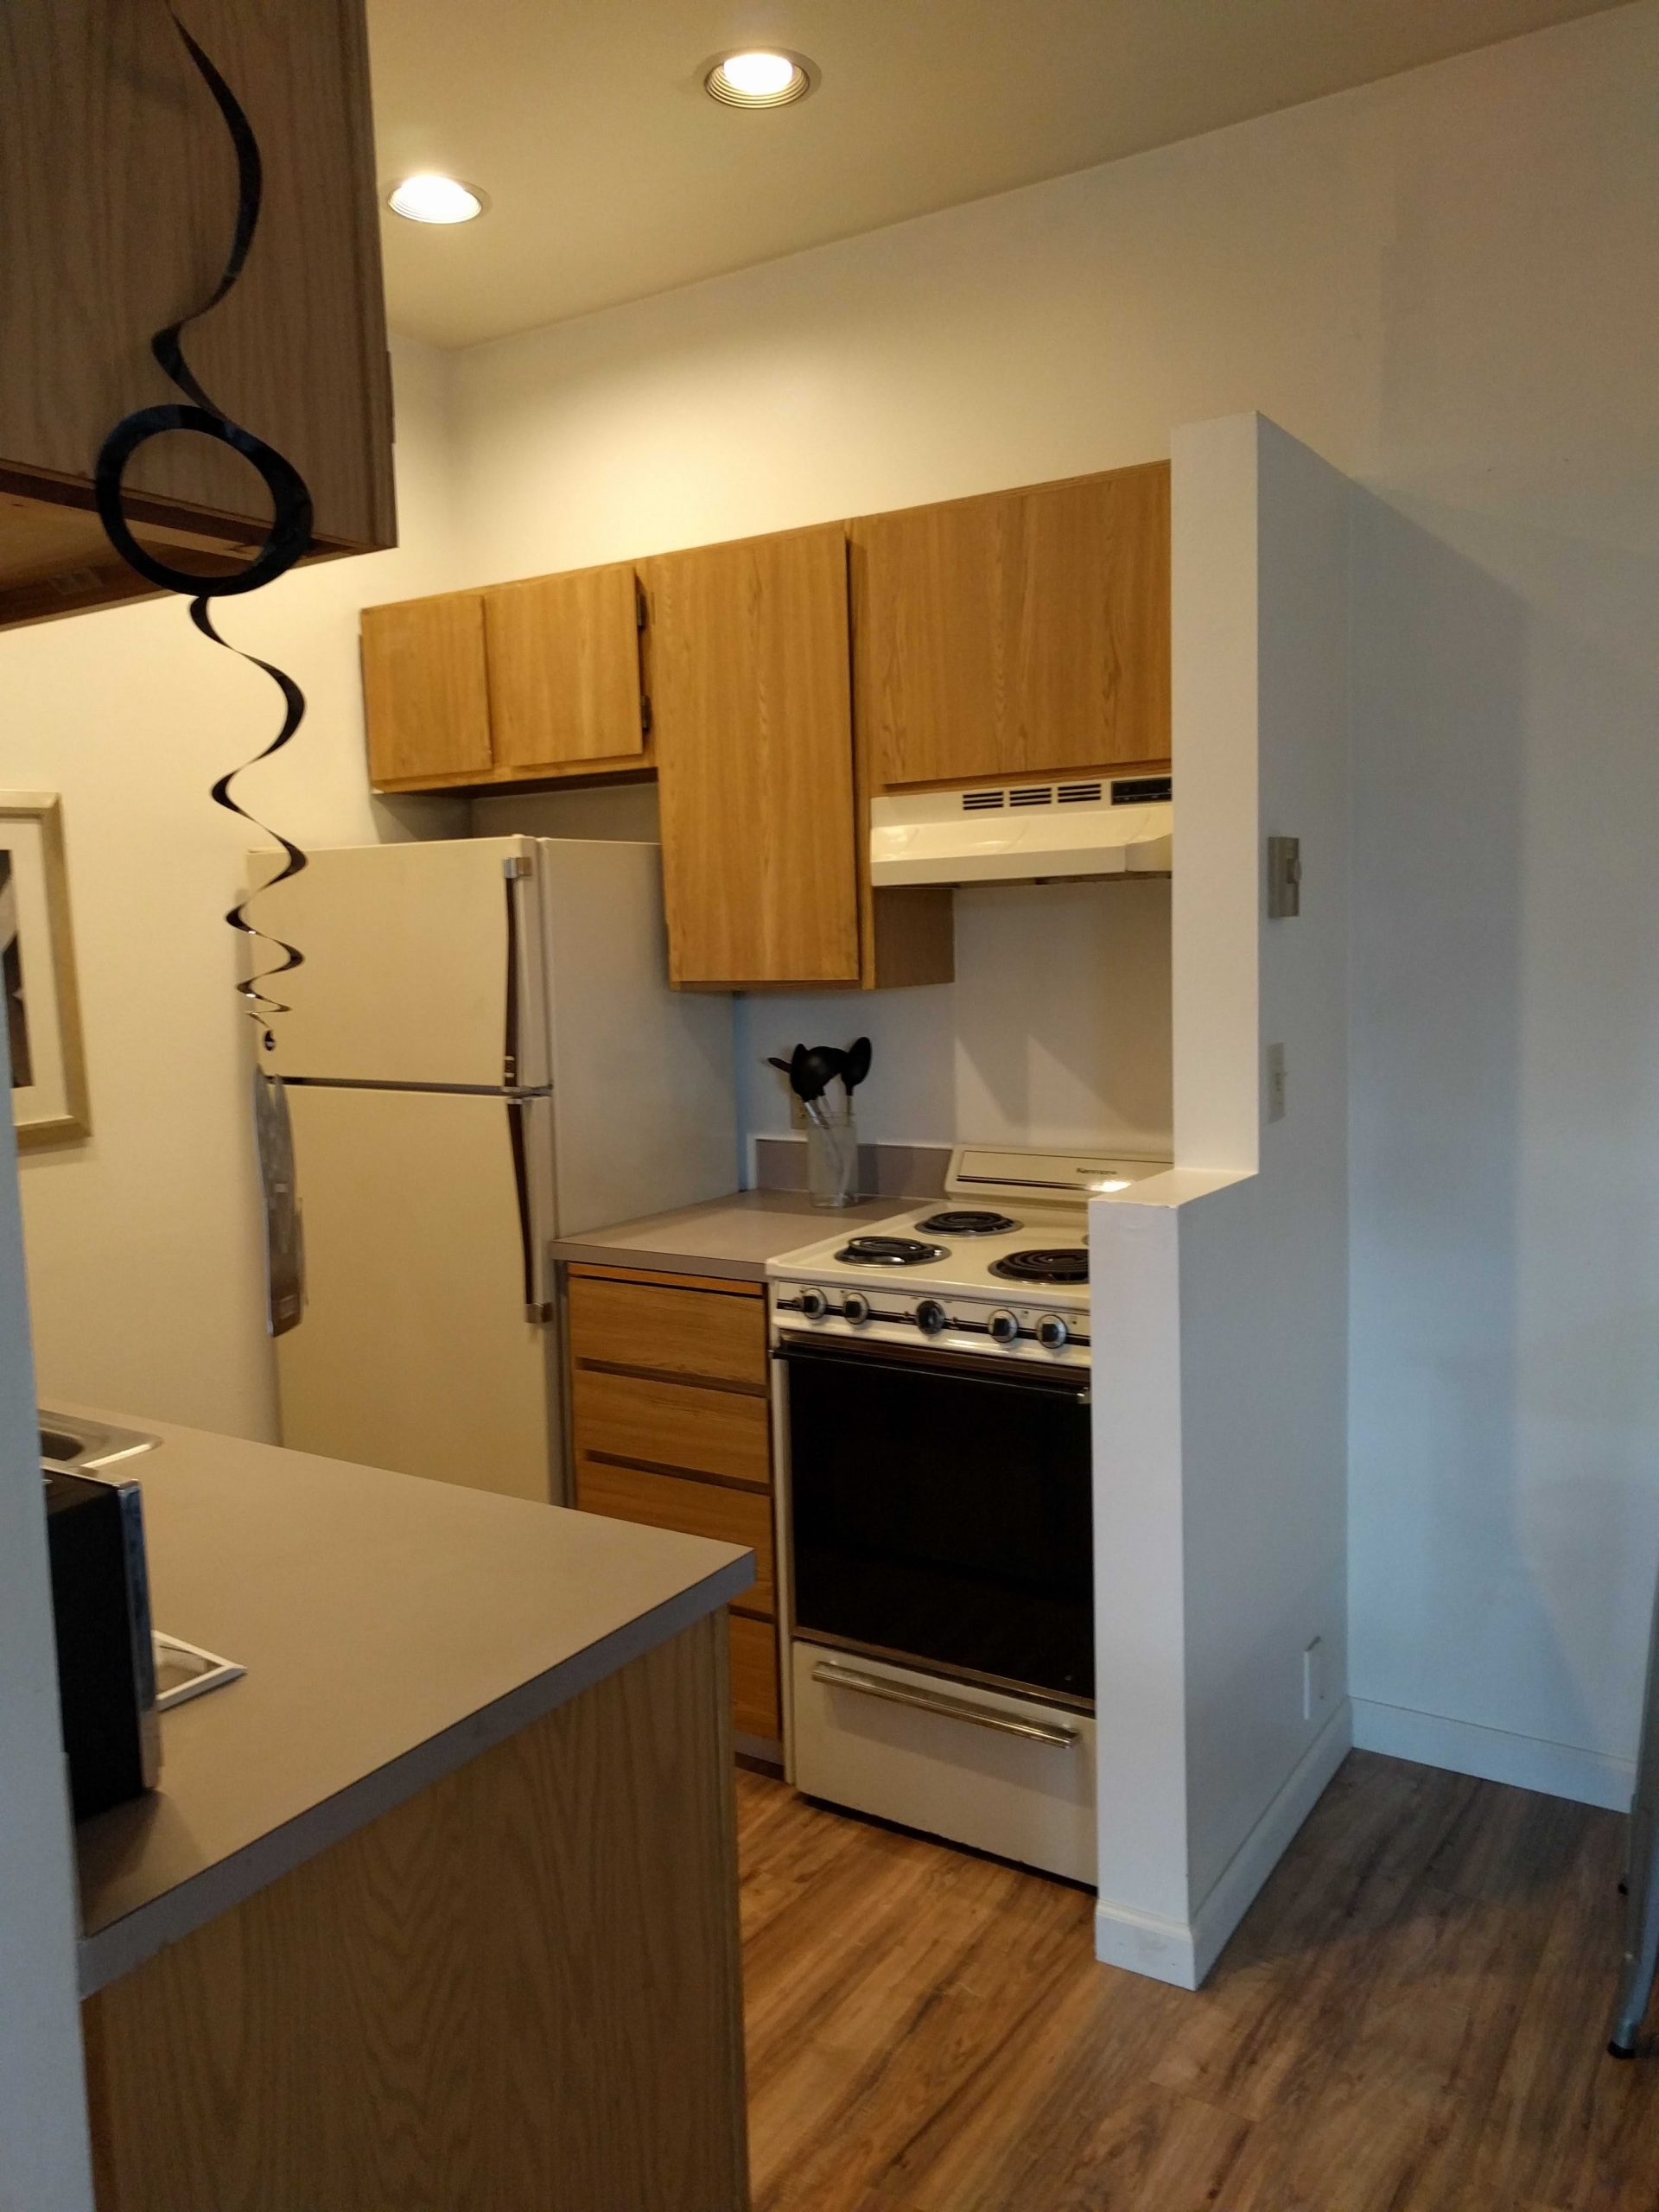 Before & After: Gut Remodel Of A Studio Apartment Kitchen intended for Kitchen Design For Studio Apartment